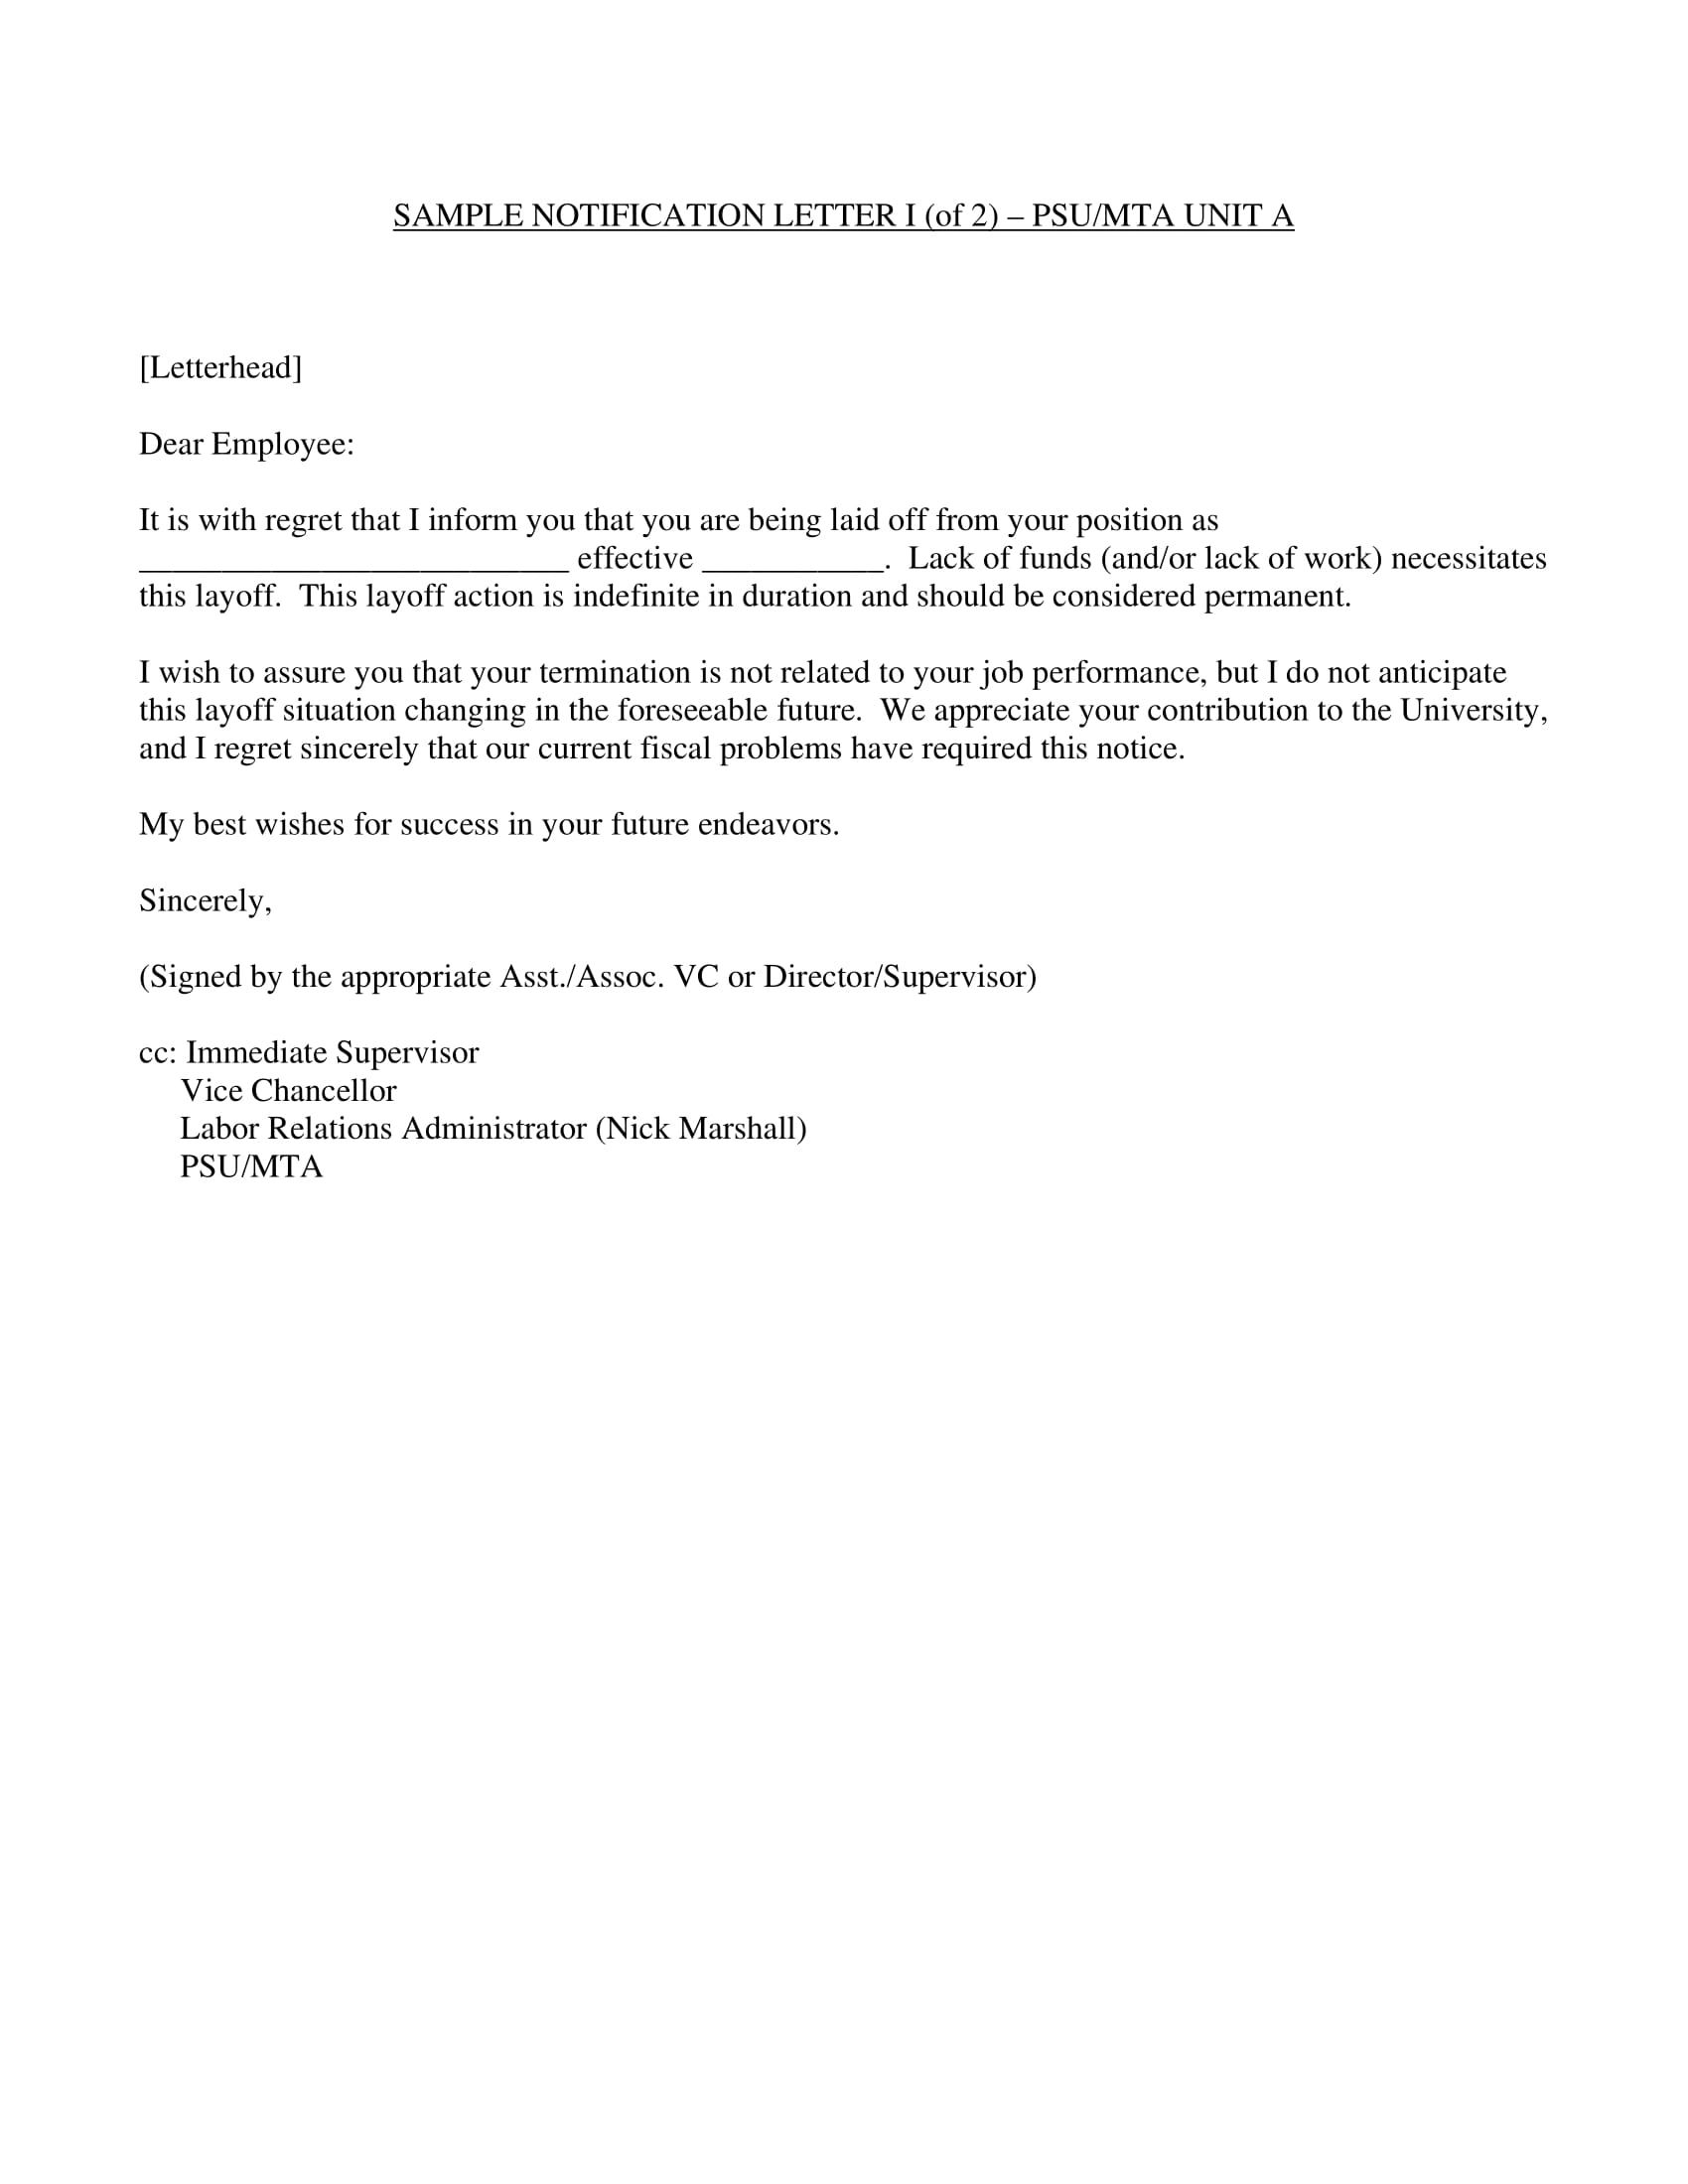 Example Of Termination Letter To Employee.Letter Of Termination Due To Poor Performance Resume